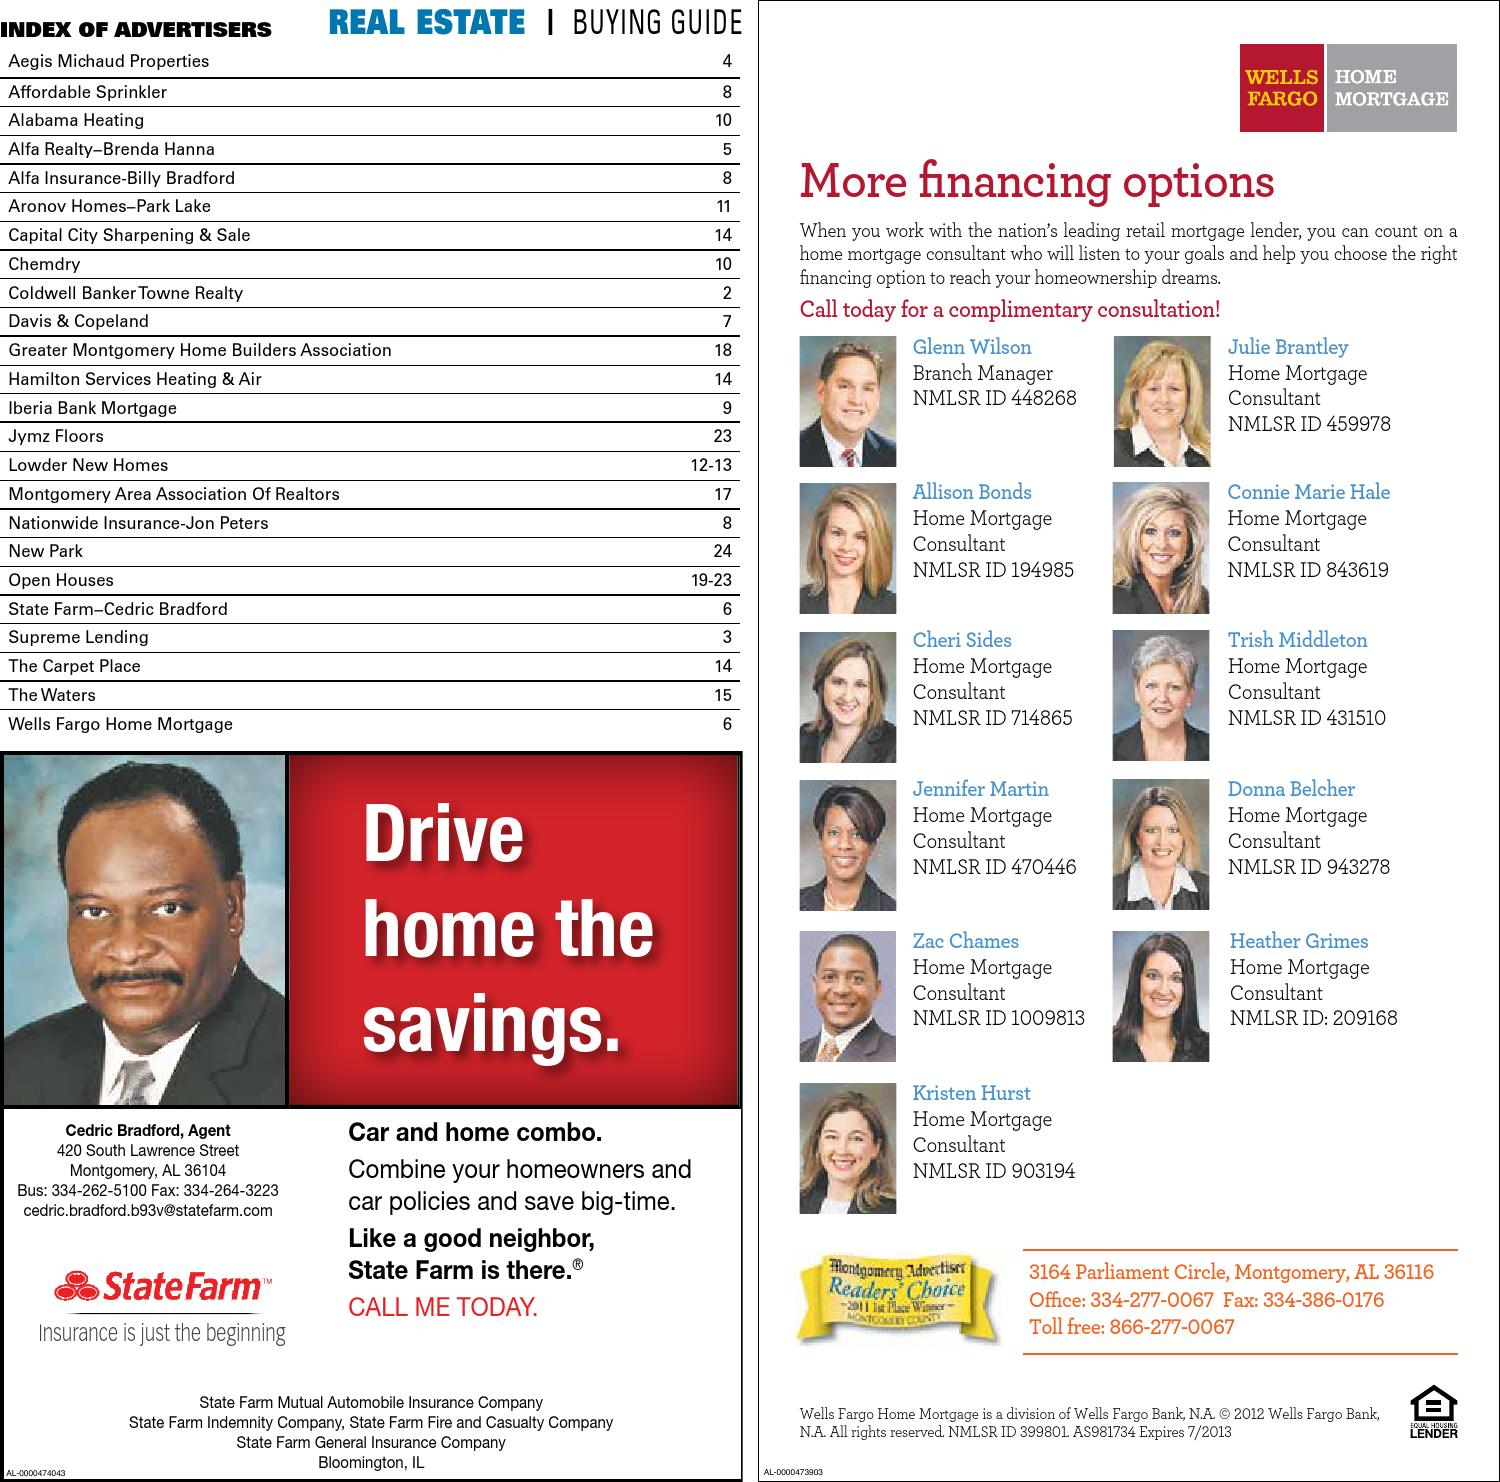 Real Estate Buying Guide by Montgomery Advertiser - Issuu